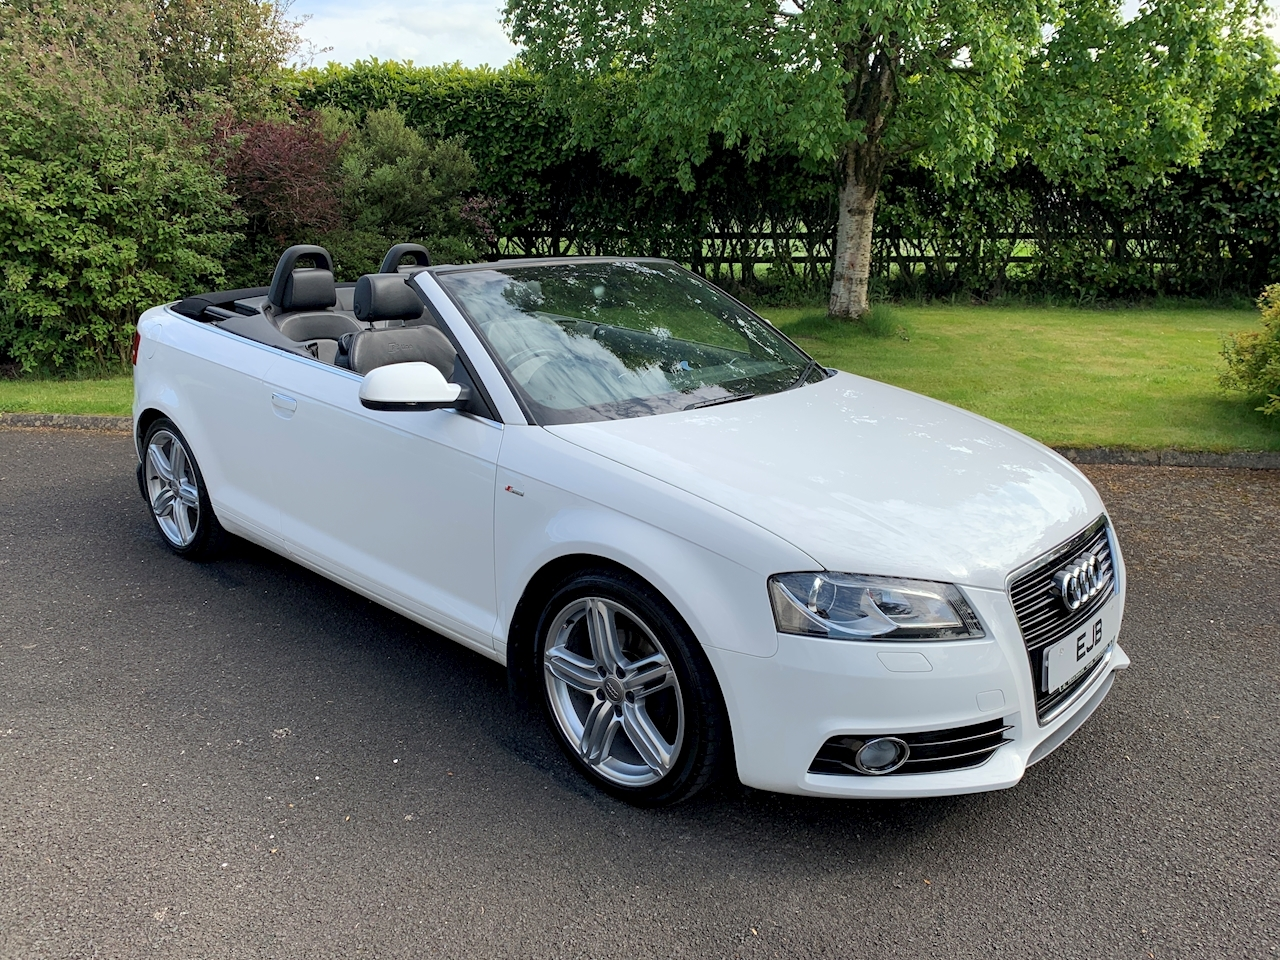 Audi A3 2.0 Tdi 140 Bhp S Line Final Edition  2dr Convertible Manual Diesel